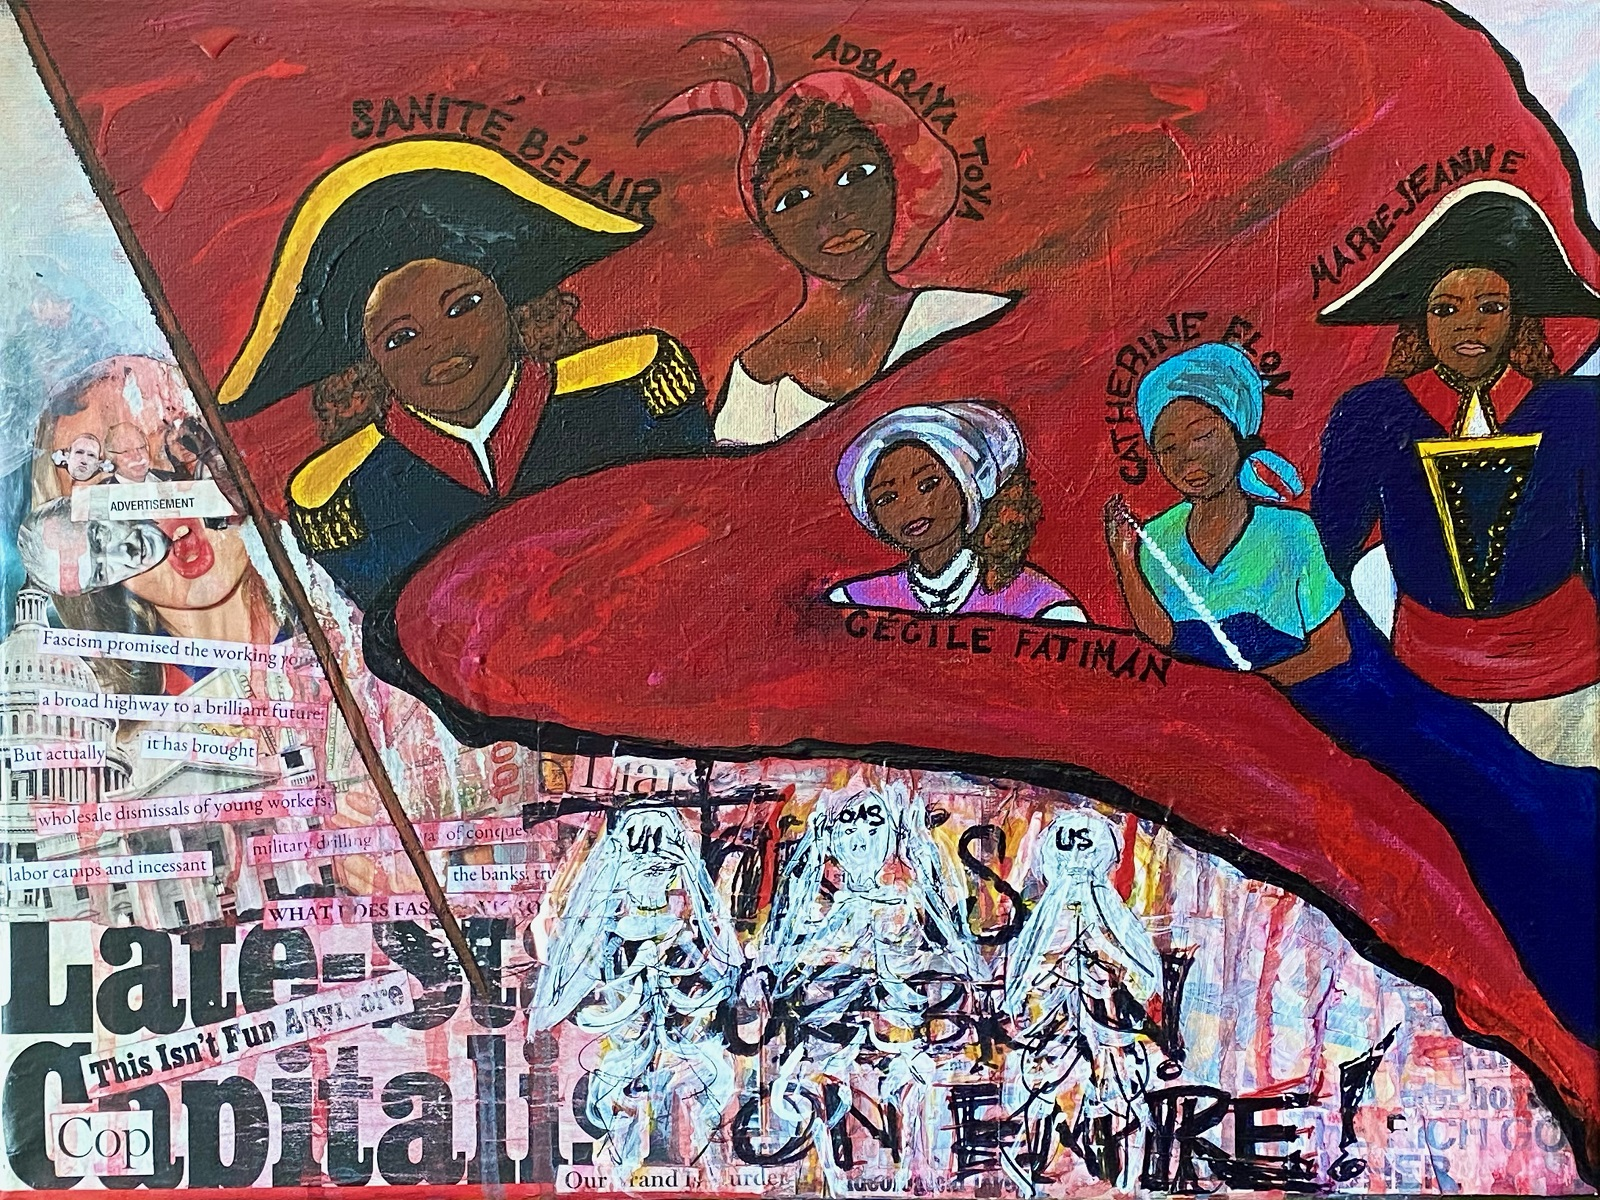  We are honored to present Vive la liberté!, an online exhibition in solidarity with the Haitian people  in the struggle for democracy and self-determination.